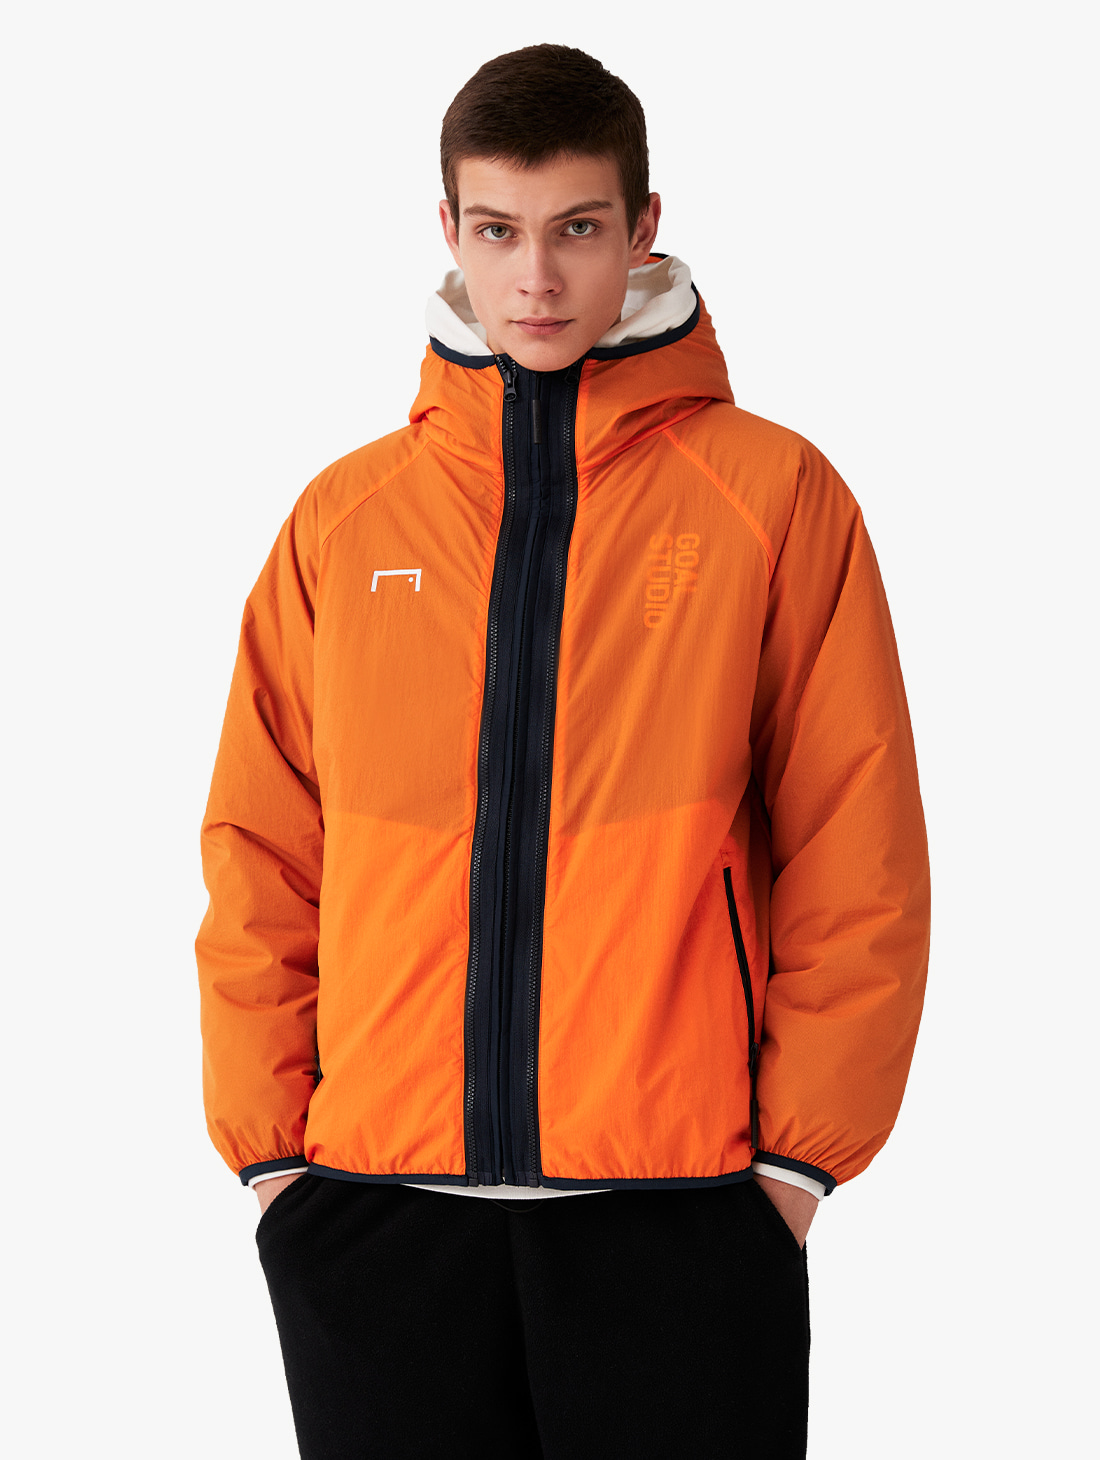 GOALSTUDIO 2IN1 THINSULATE JACKET - ORANGE/NAVY